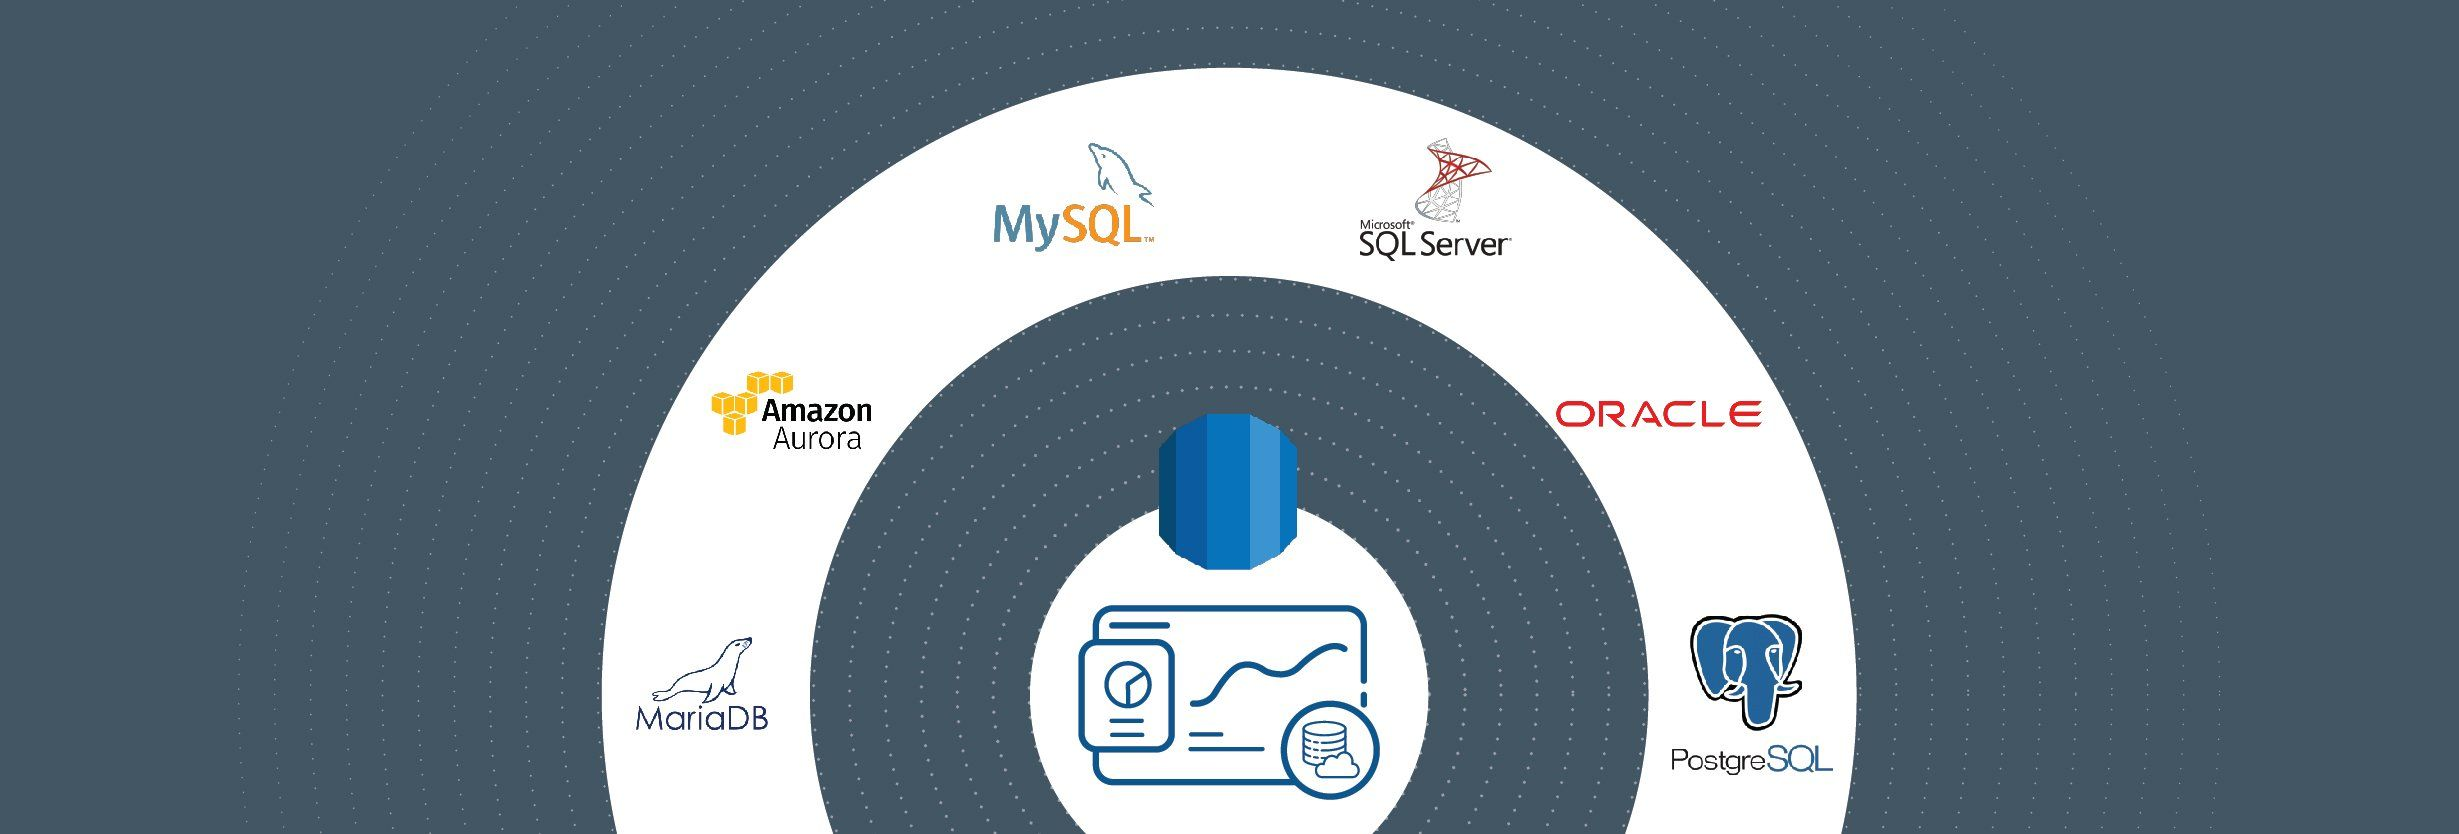 Amazon RDS + OpsRamp: Dynamic Monitoring and Proactive Issue Identification for Optimal Database Performance